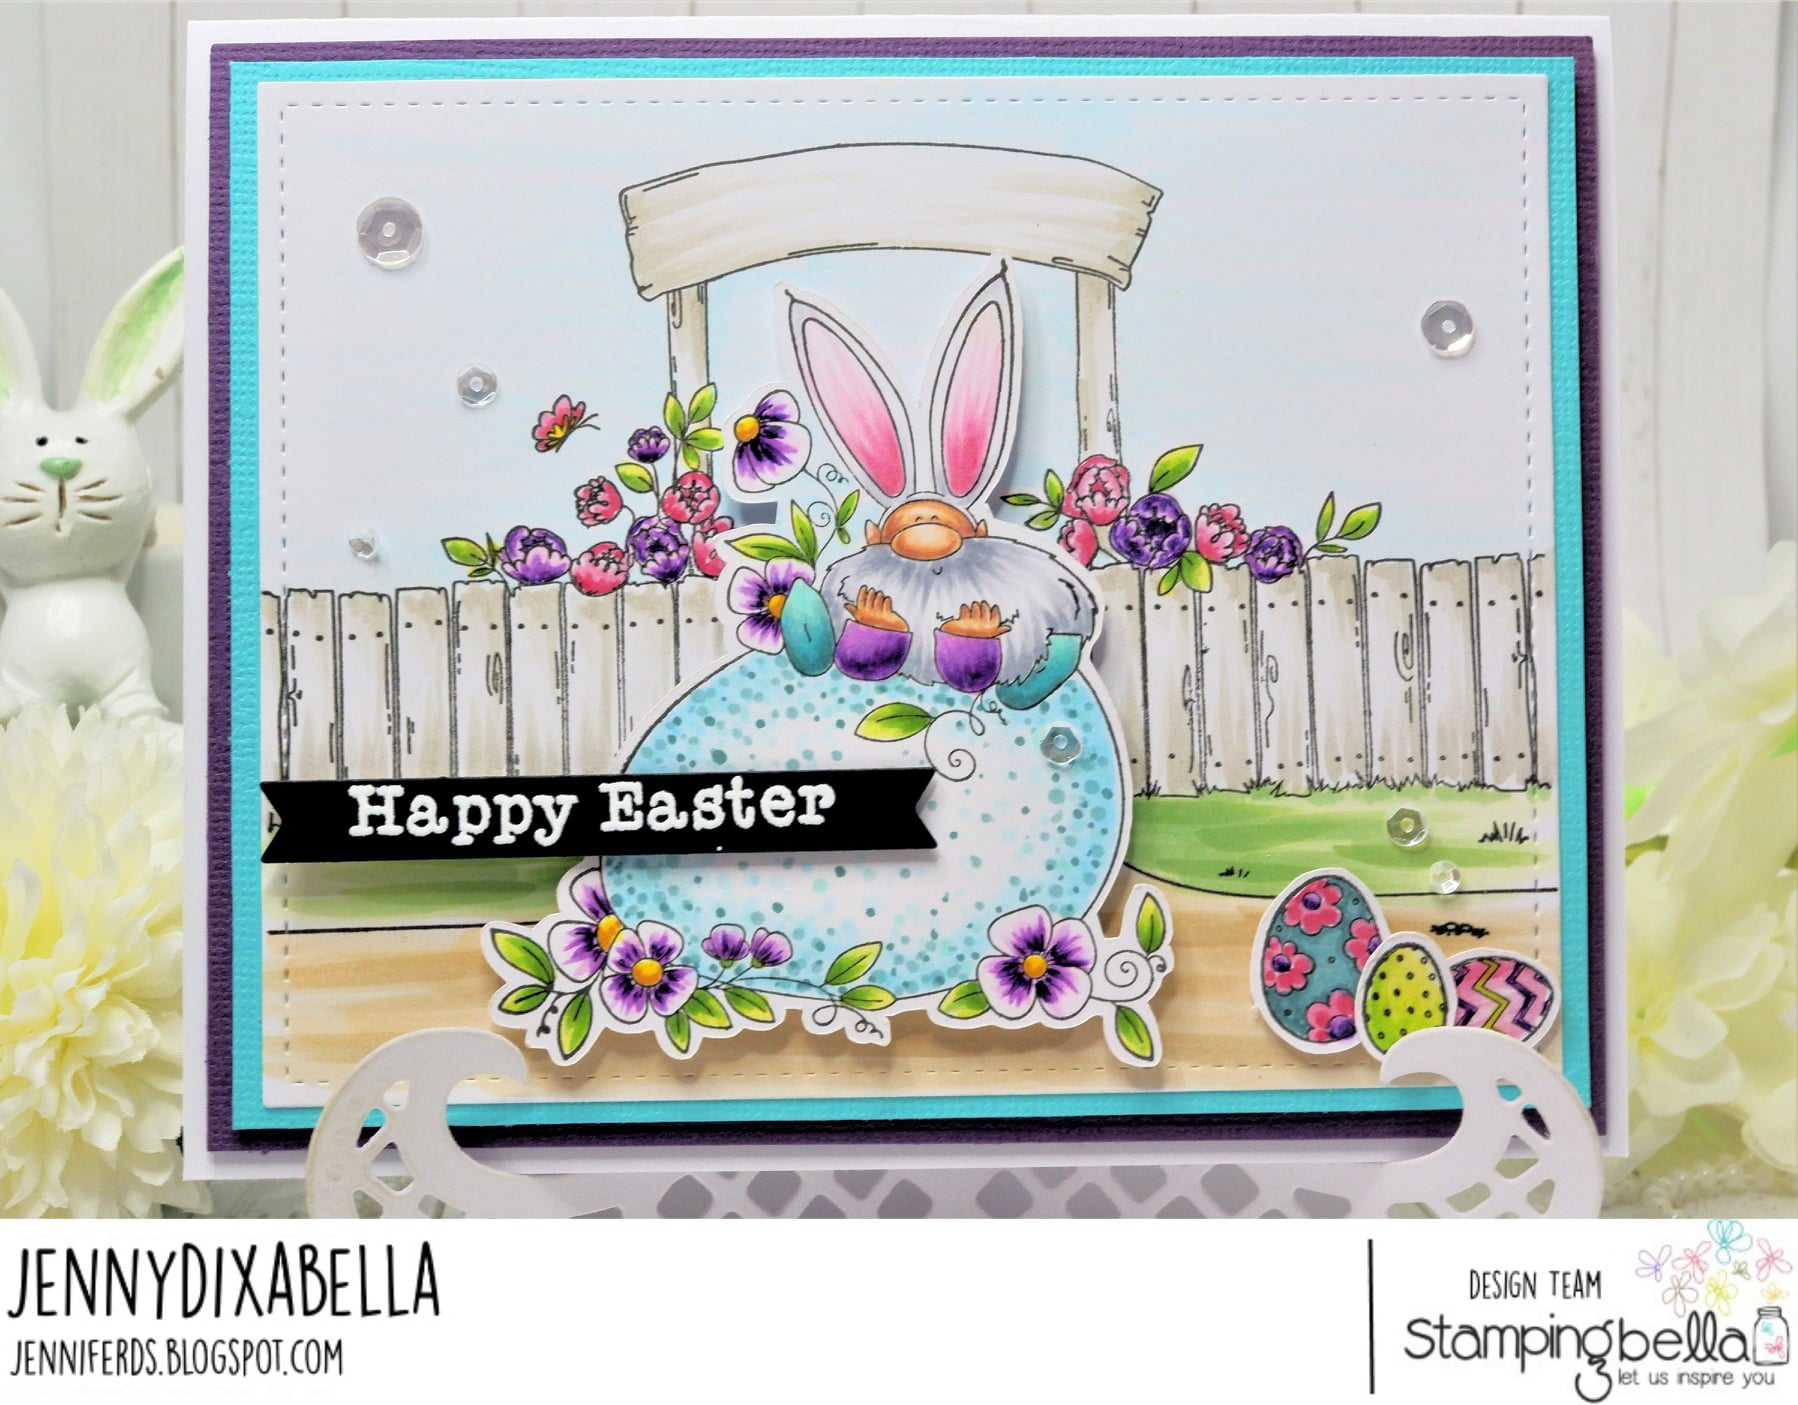 www.stampingbella.com: rubber stamp used: GNOME on an EGG card by Jenny Dix